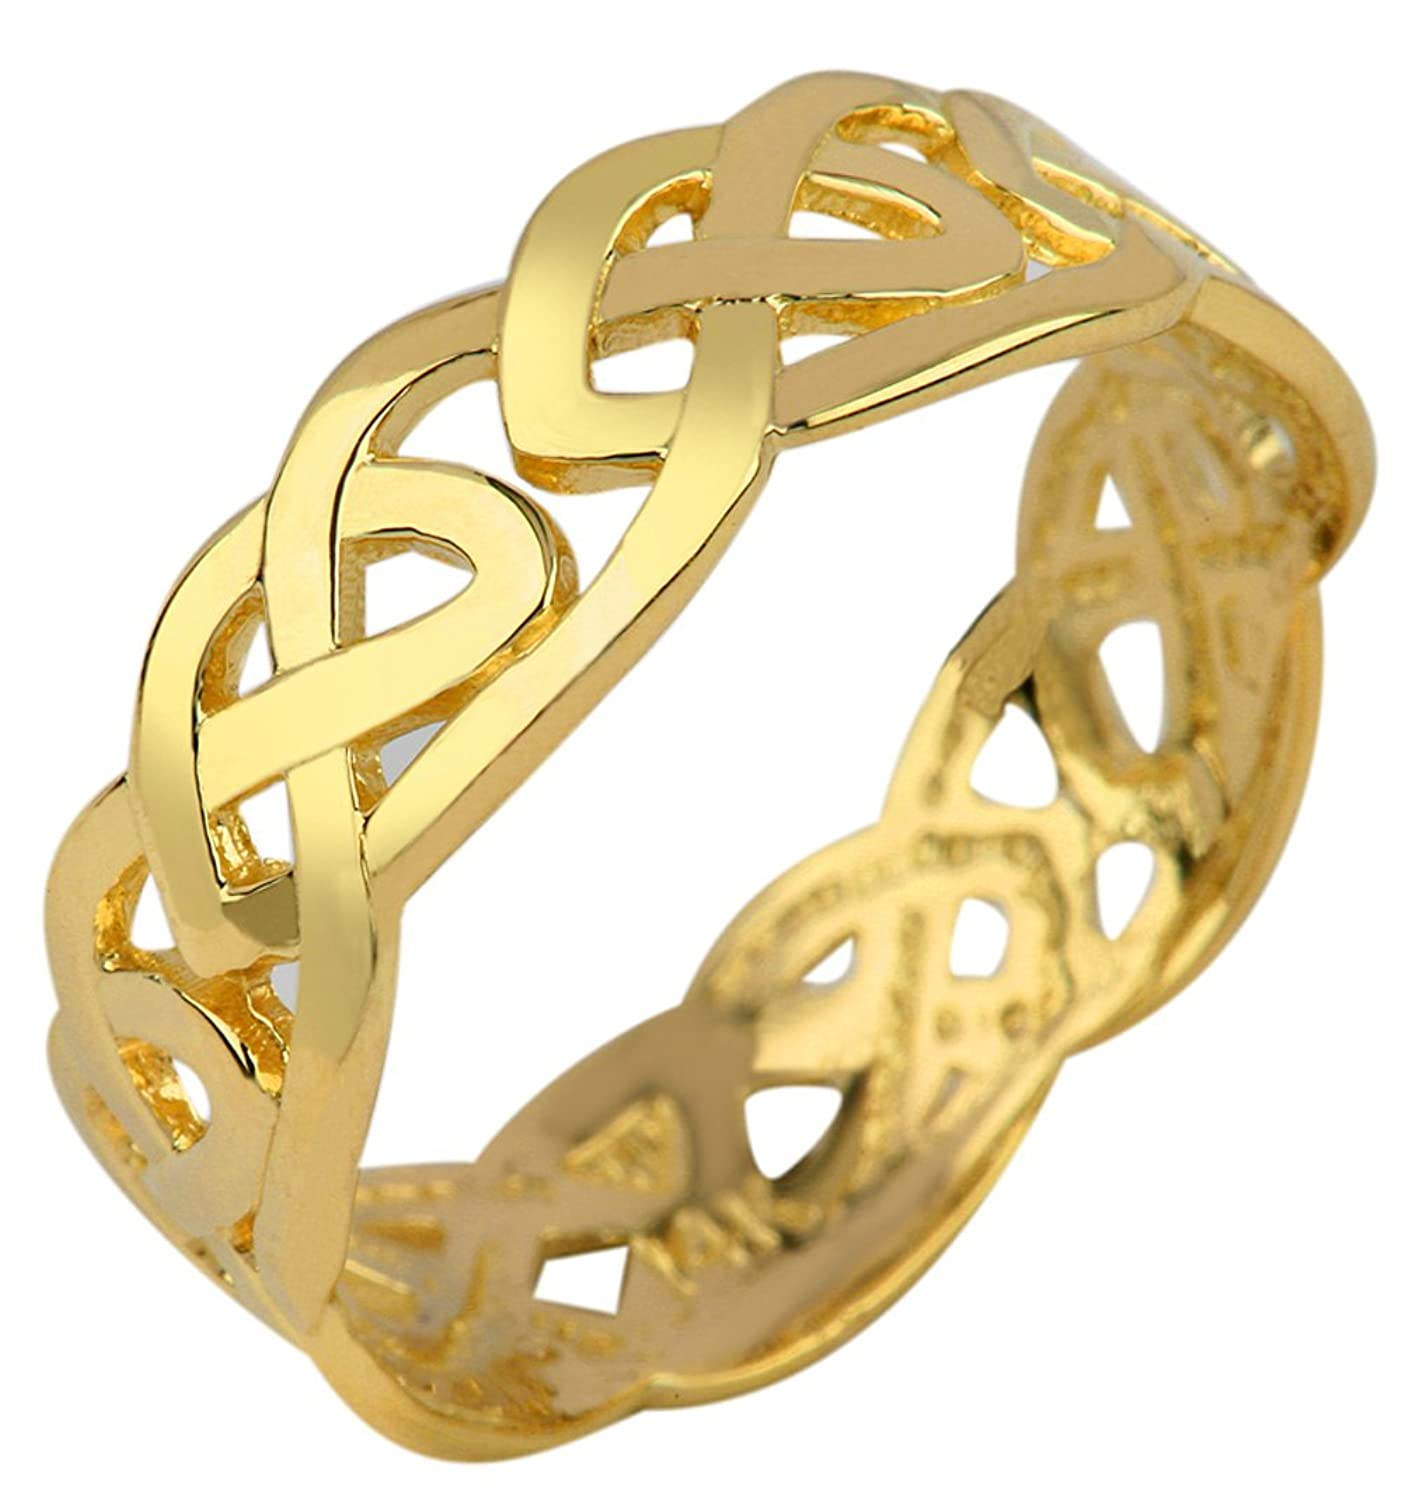 ring with round gold bands infinity band engagement wedding twisted diamond pin combo